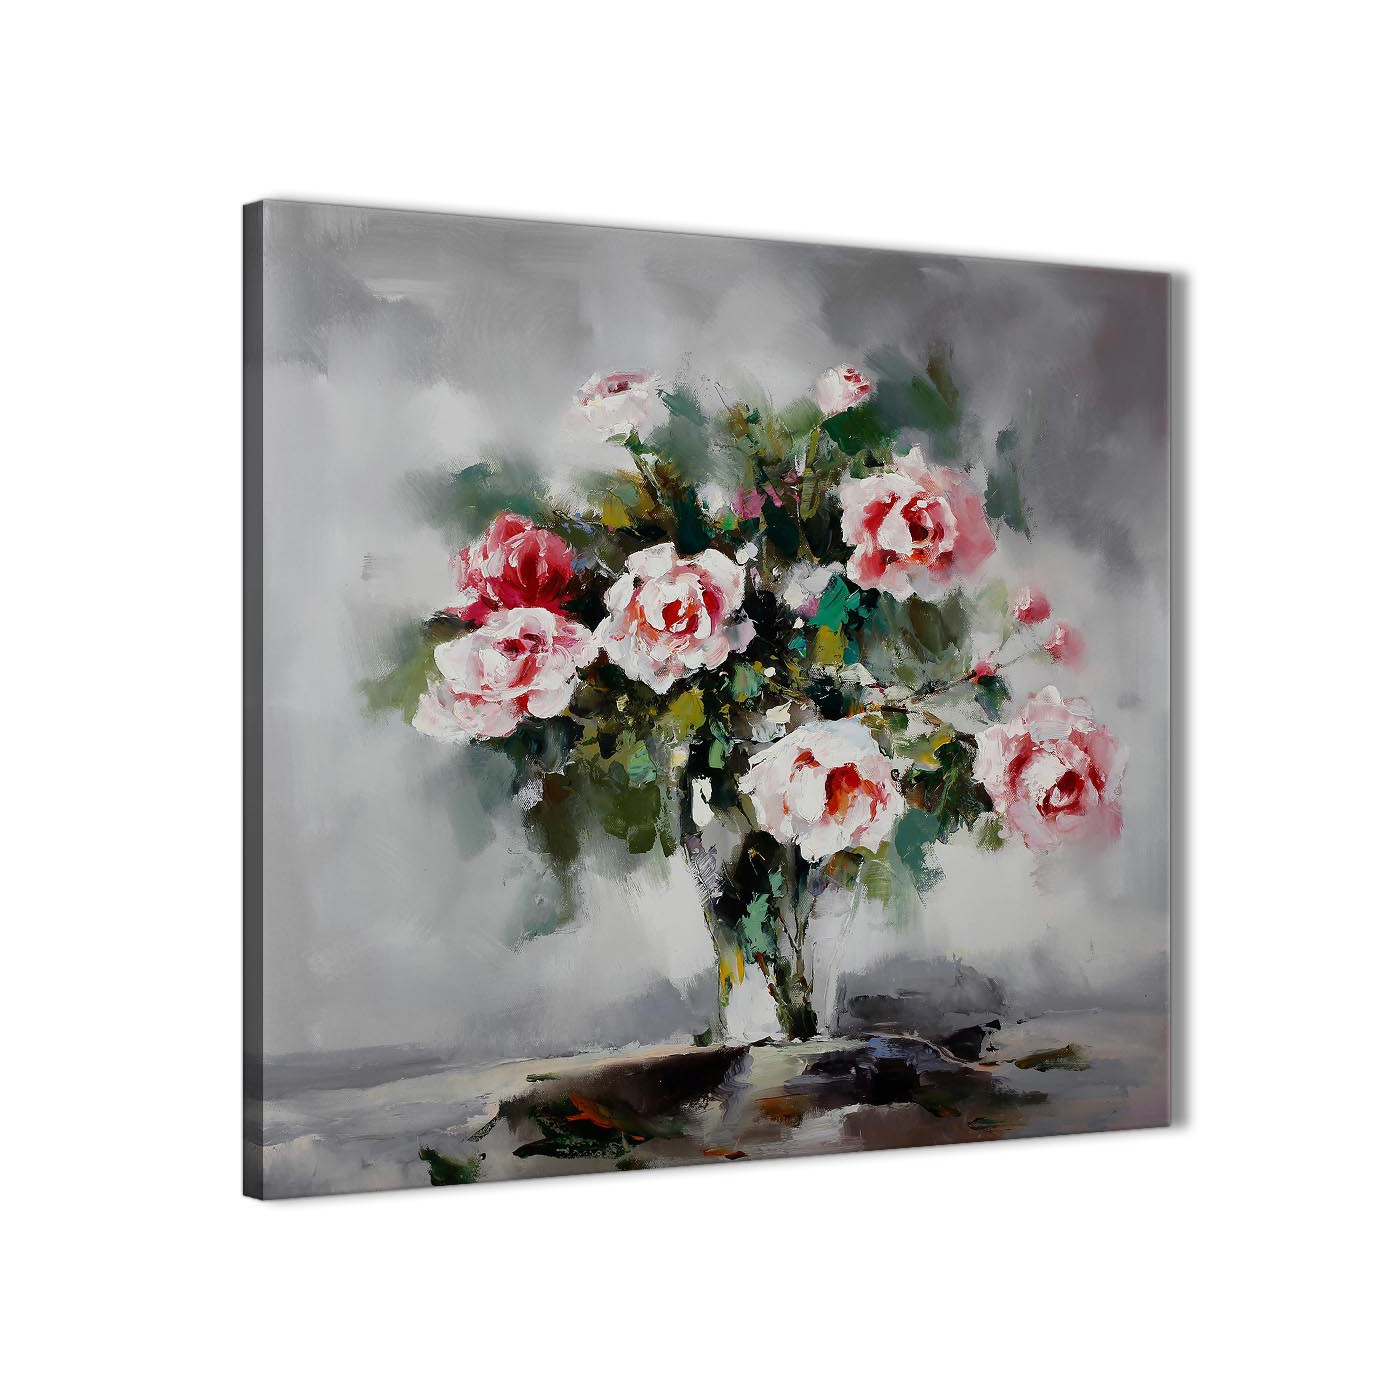 Wall art flower painting - Modern Pink Grey Flowers Painting Abstract Dining Room Canvas Wall Art Accessories 1s442l 79cm Square Display Gallery Item 1